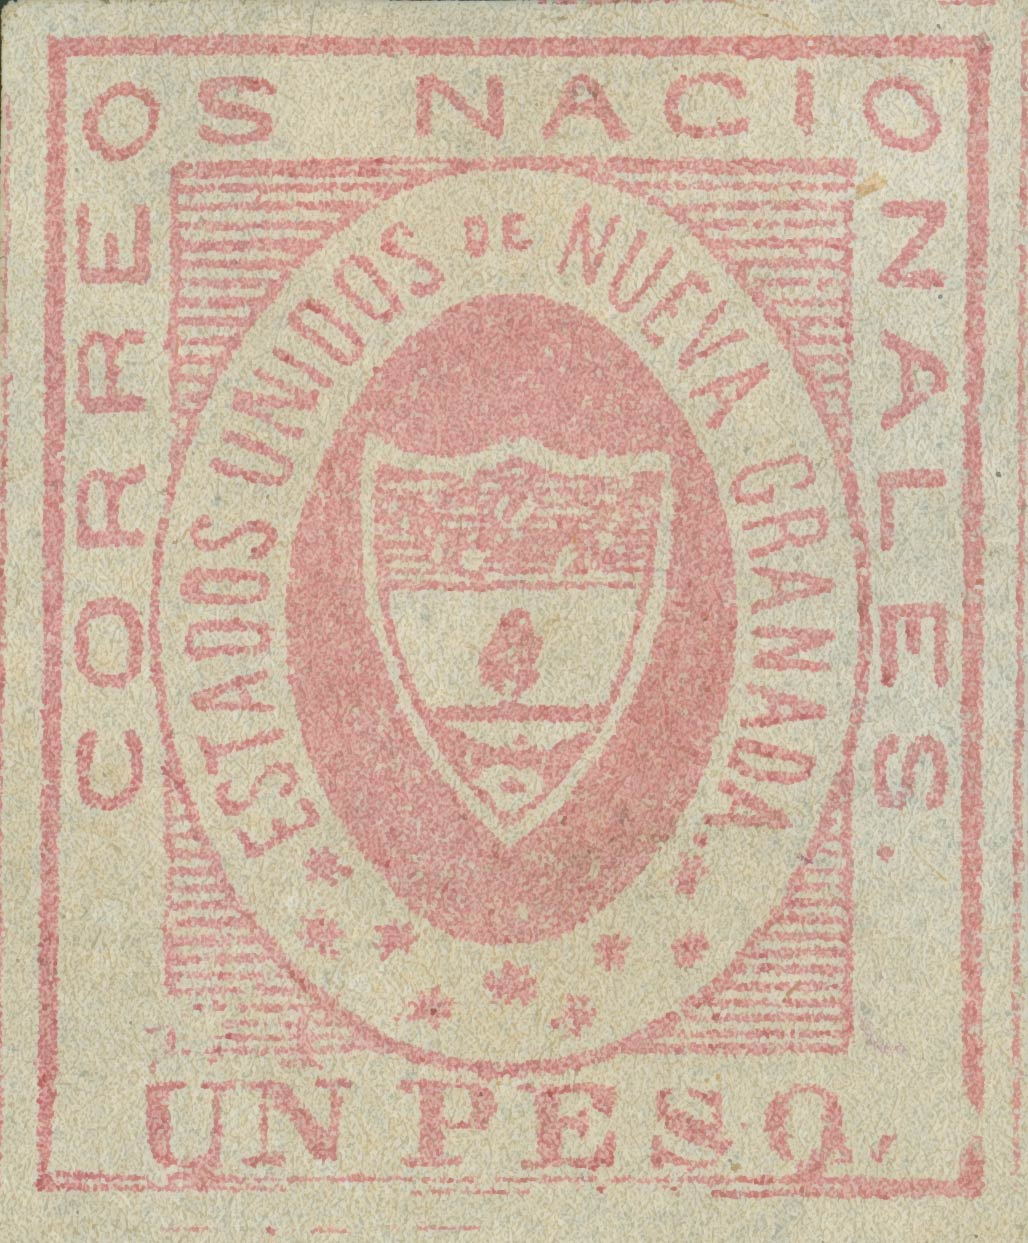 Colombia_1861_Coat_of_Arms_1p_Sperati_Forgery